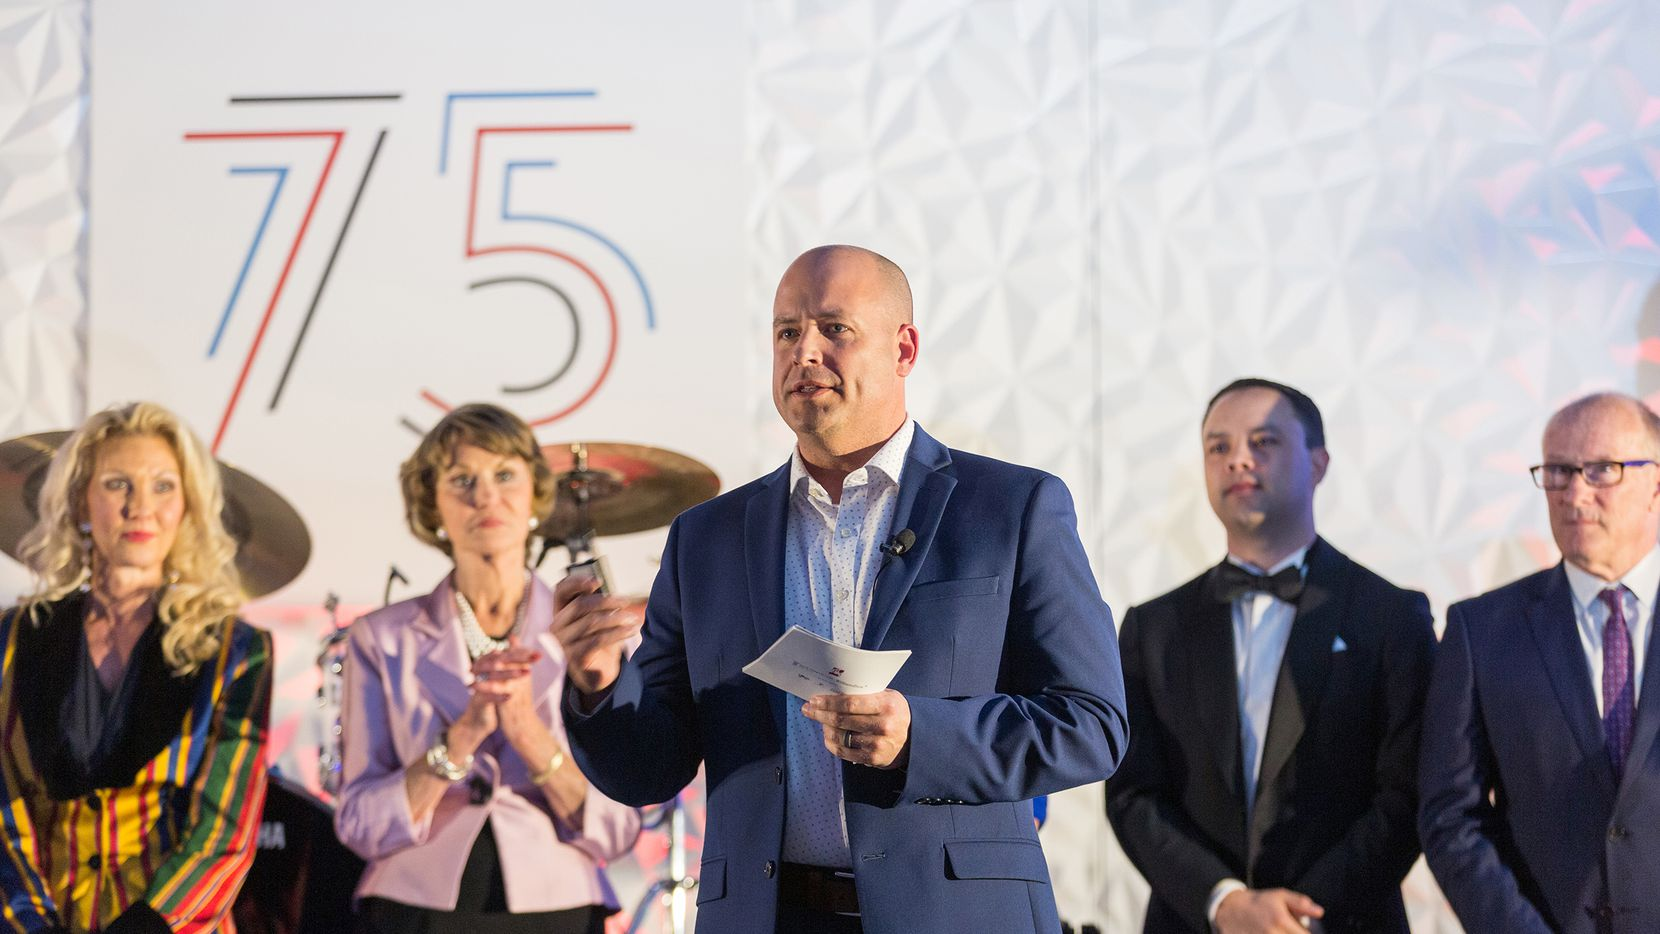 Ebby Halliday Companies' president and CEO Chris Kelly addressed a crowd of about 1,800 attendees at the recent companywide 75th anniversary celebration.